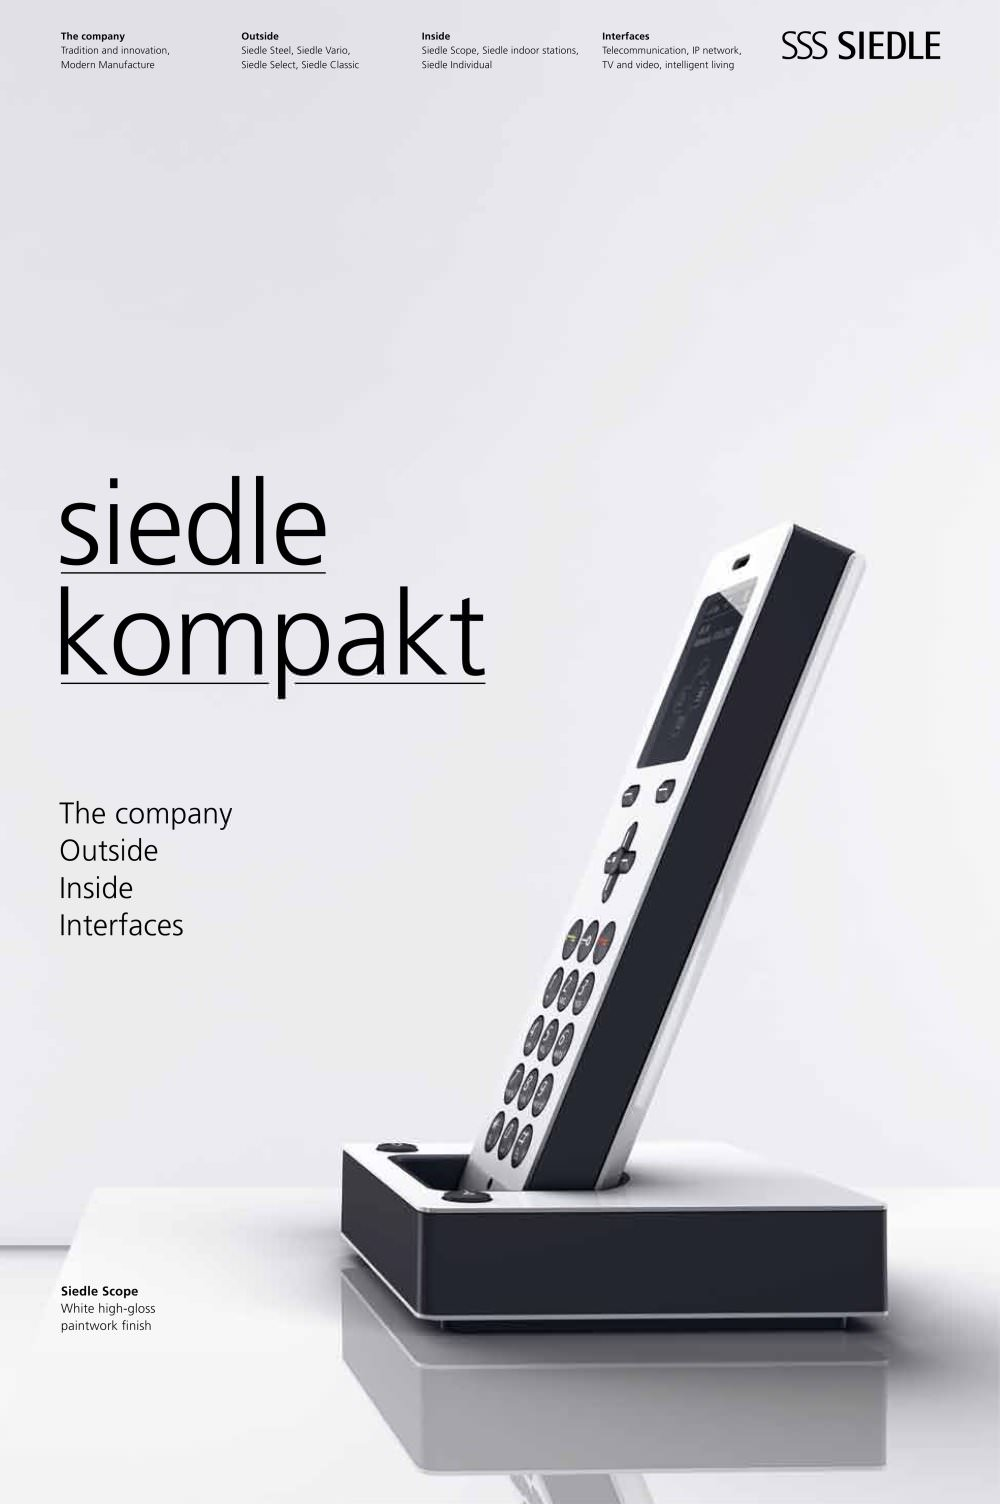 siedle kompakt - sss siedle - pdf catalogues | documentation | brochures